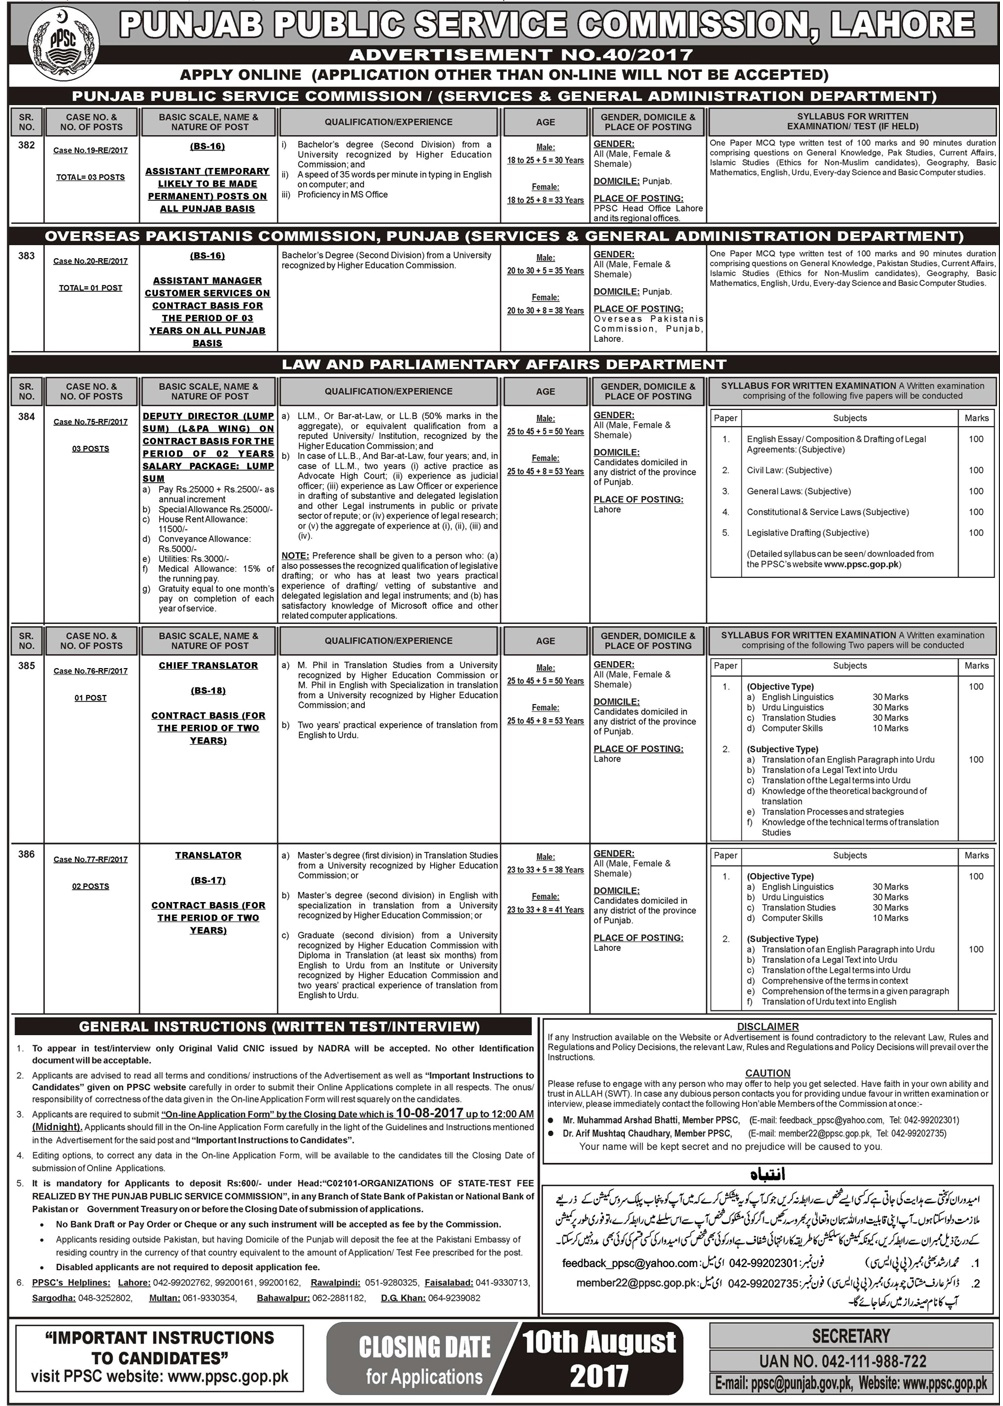 Jobs in Punjab Public Service Commission Lahore 26 July 2017.ad2